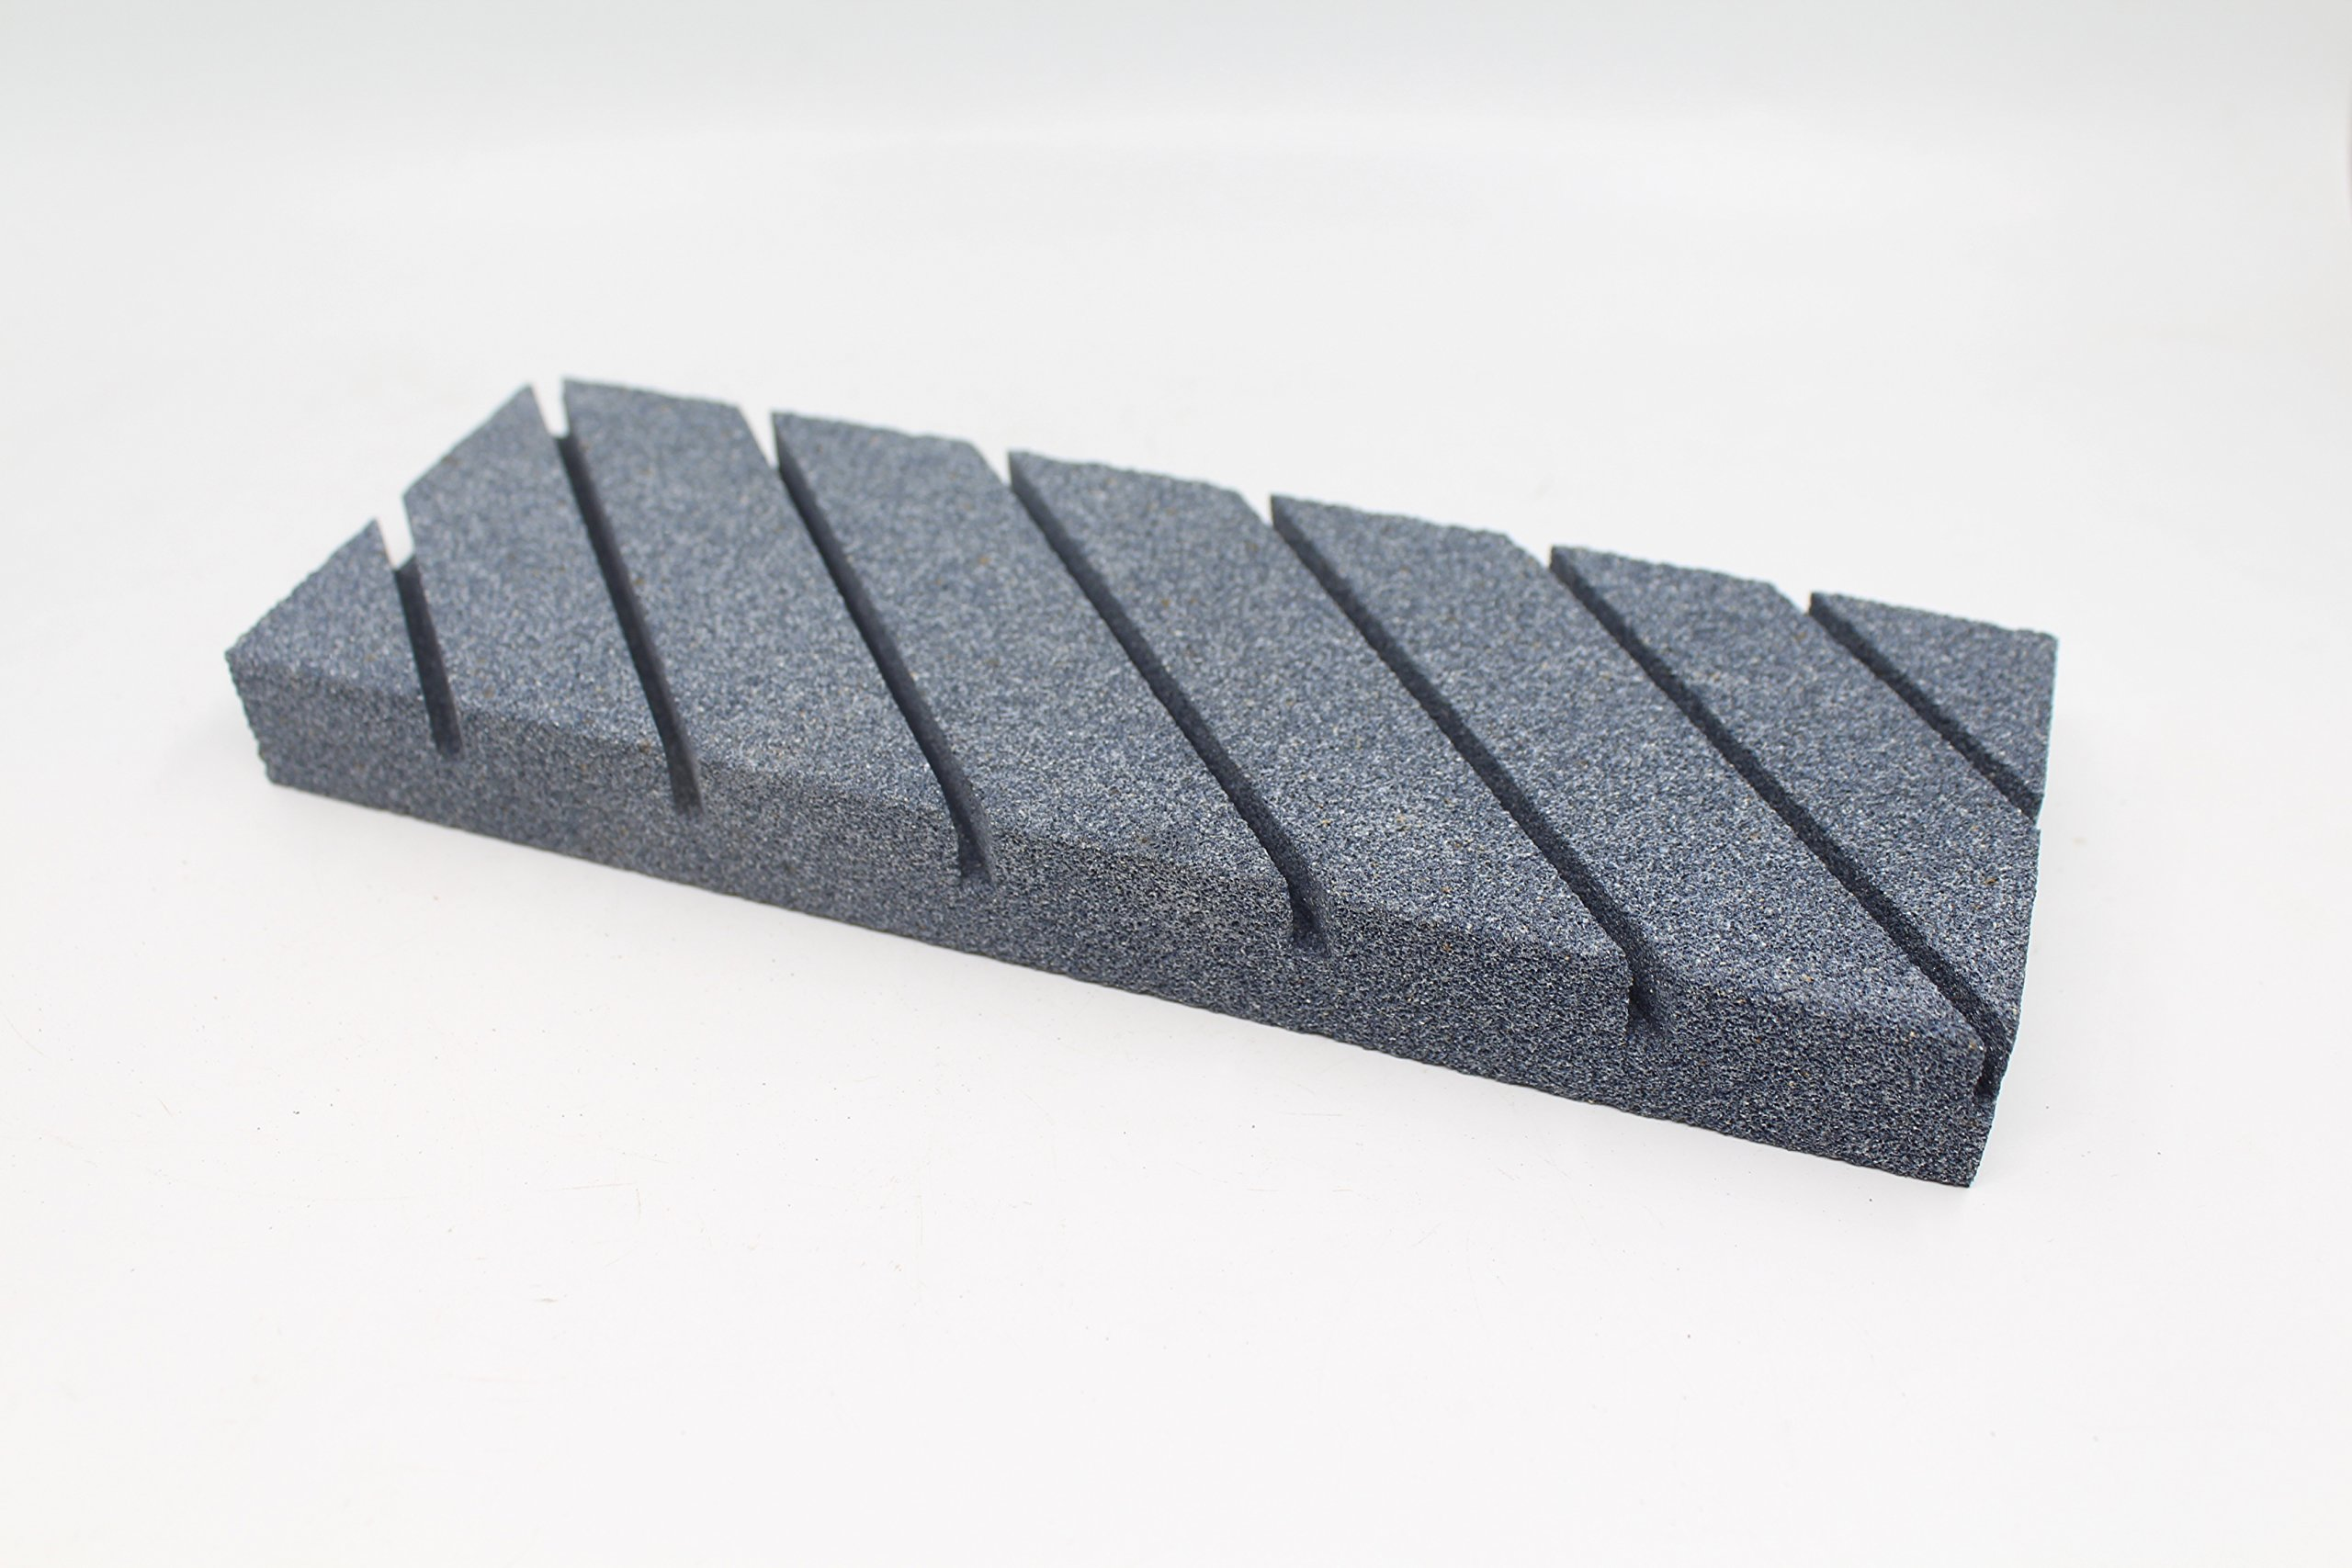 Flattening Stone the Ideal Option to Repair Sharpening Stones - Waterstones or Whetstone Sharpening Tool for Quick and Easy Grinding Nagura Stone with the Surface of Grit Silicon Carbide